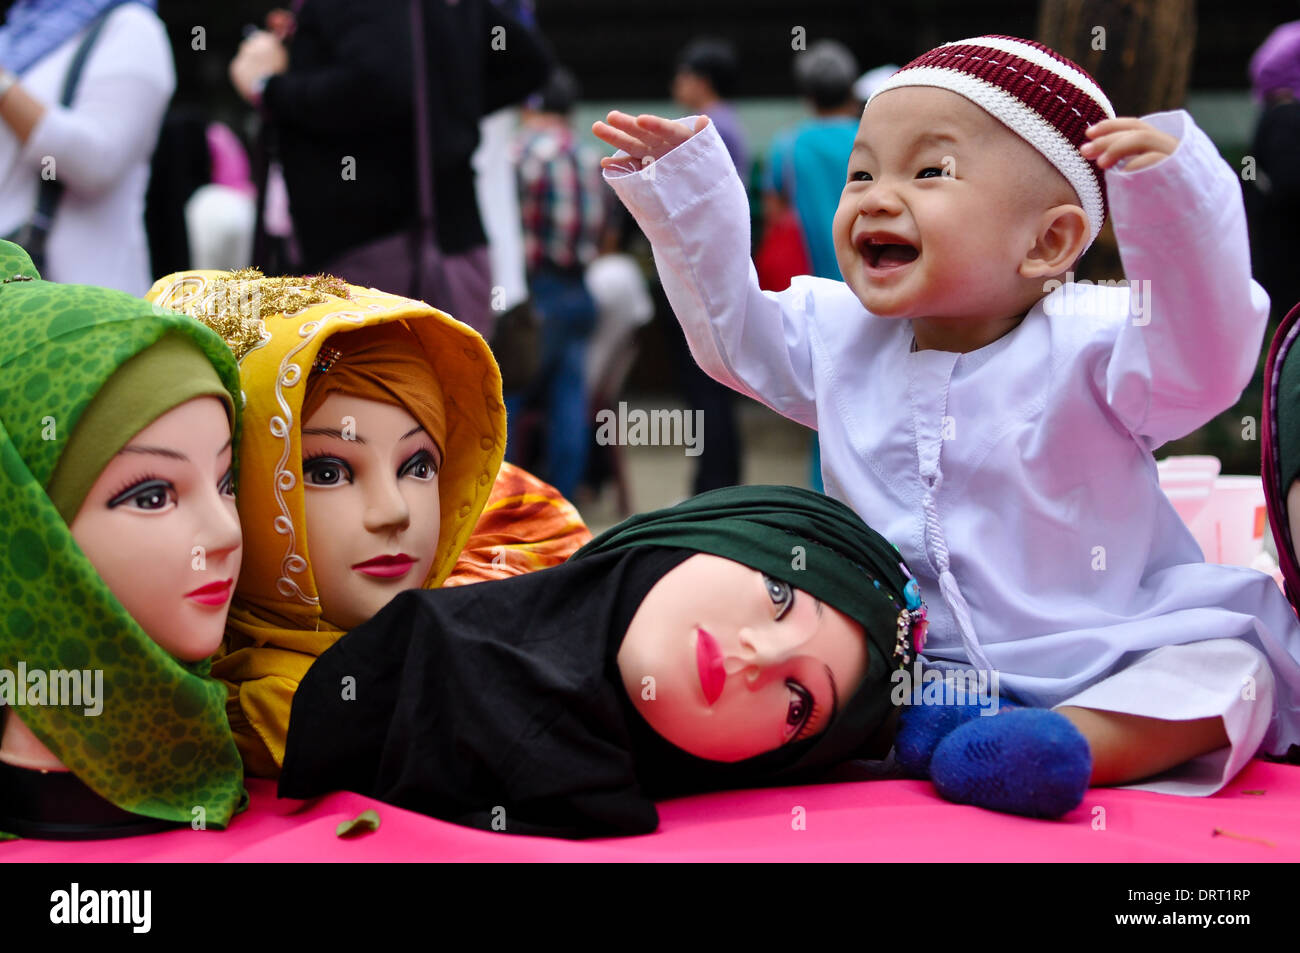 A boy plays with mannequin heads wearing hijabs during the celebration of World Hijab Day in Quezon City. - Stock Image